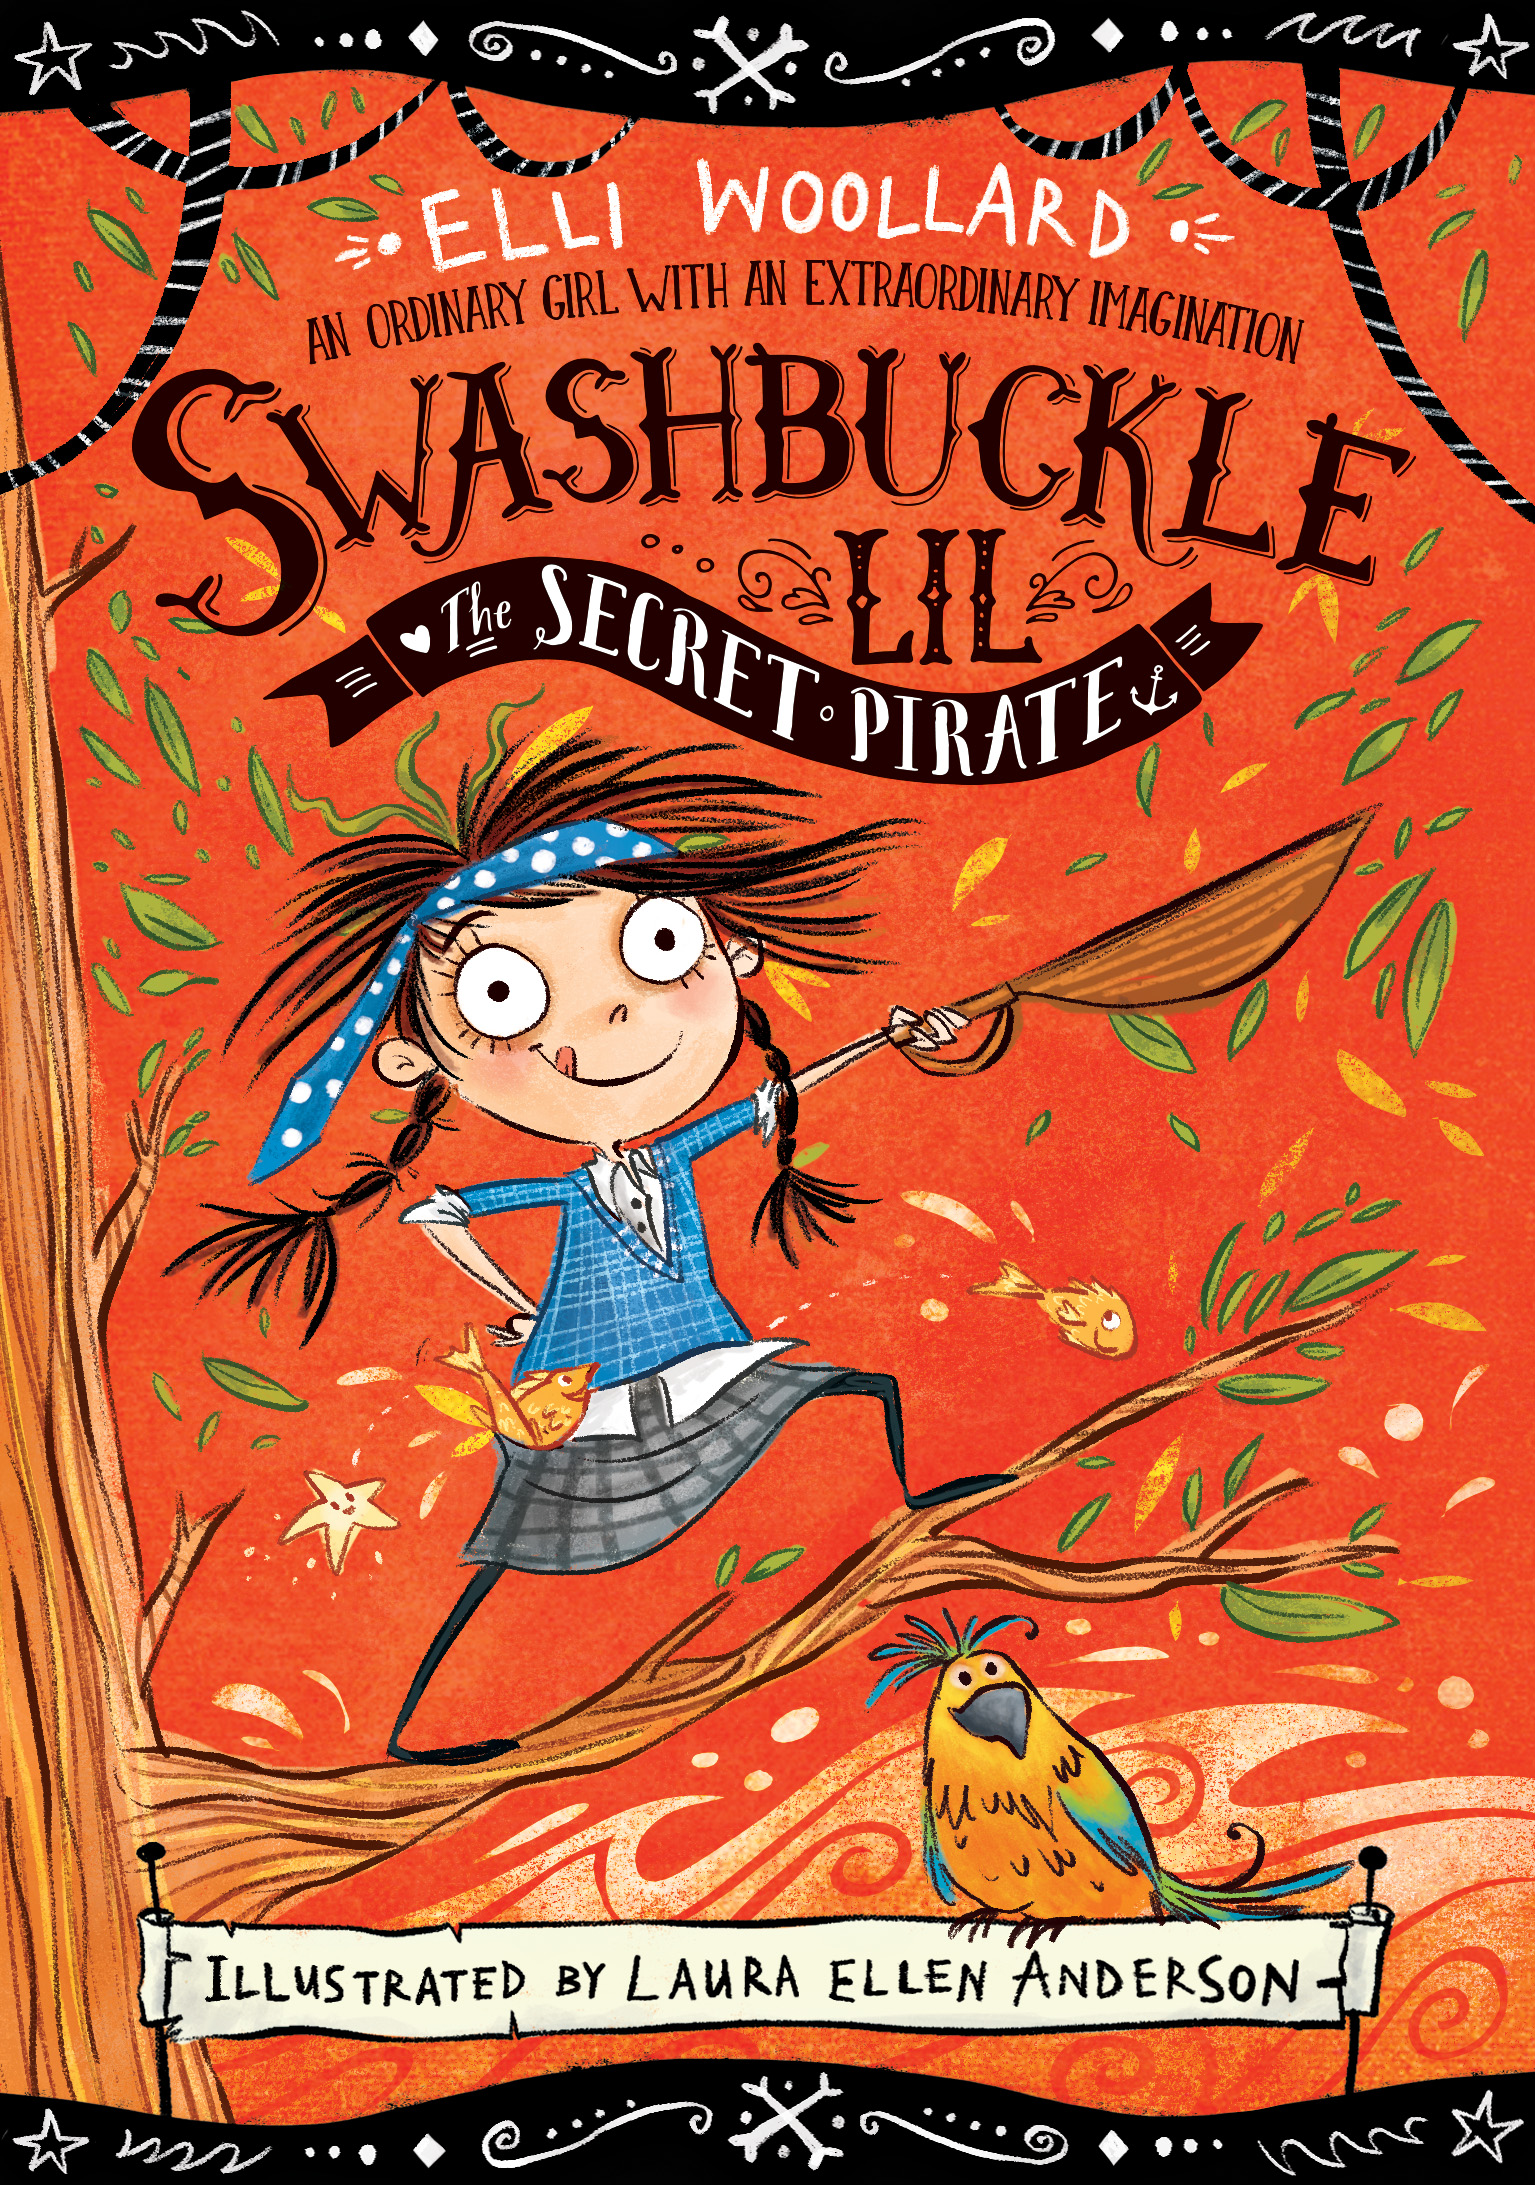 Swashbuckle Lil: The Secret Pirate